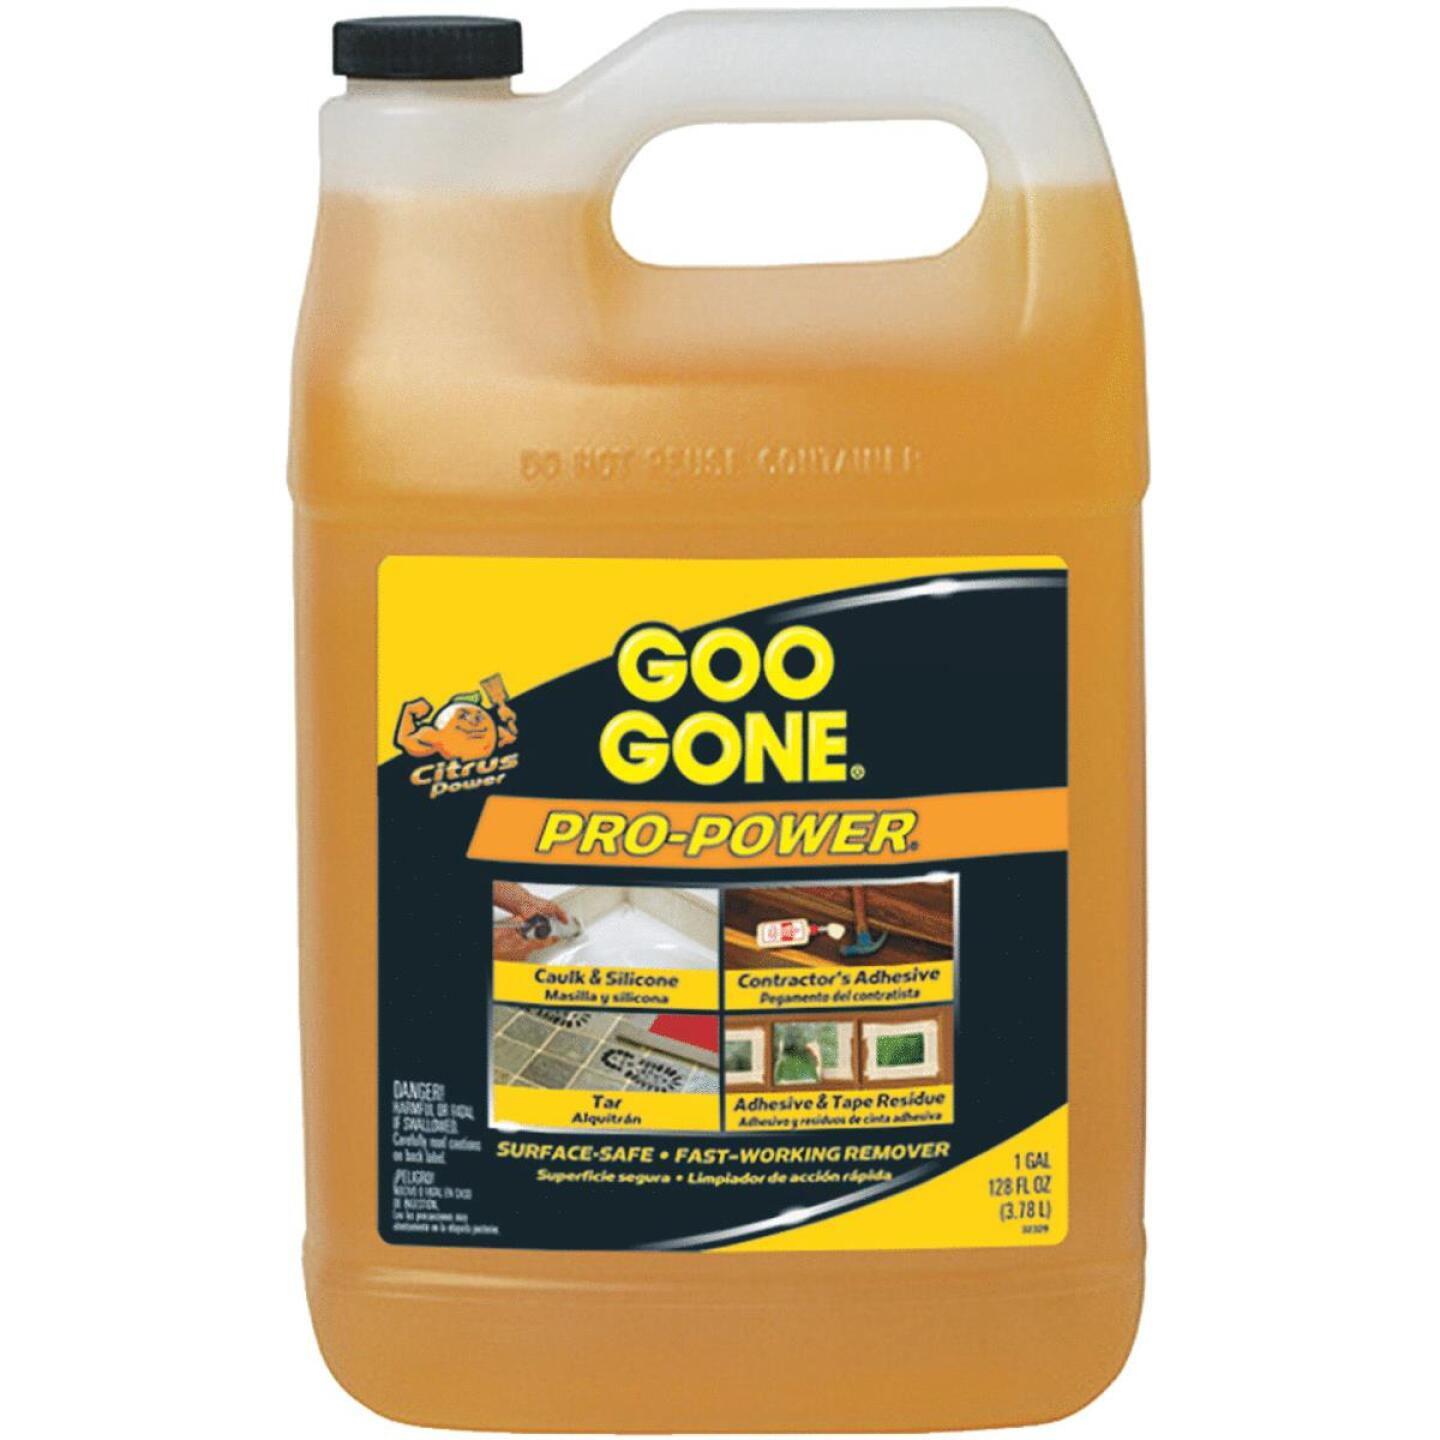 Goo Gone 1 Gal. Pro-Power Adhesive Remover Image 139